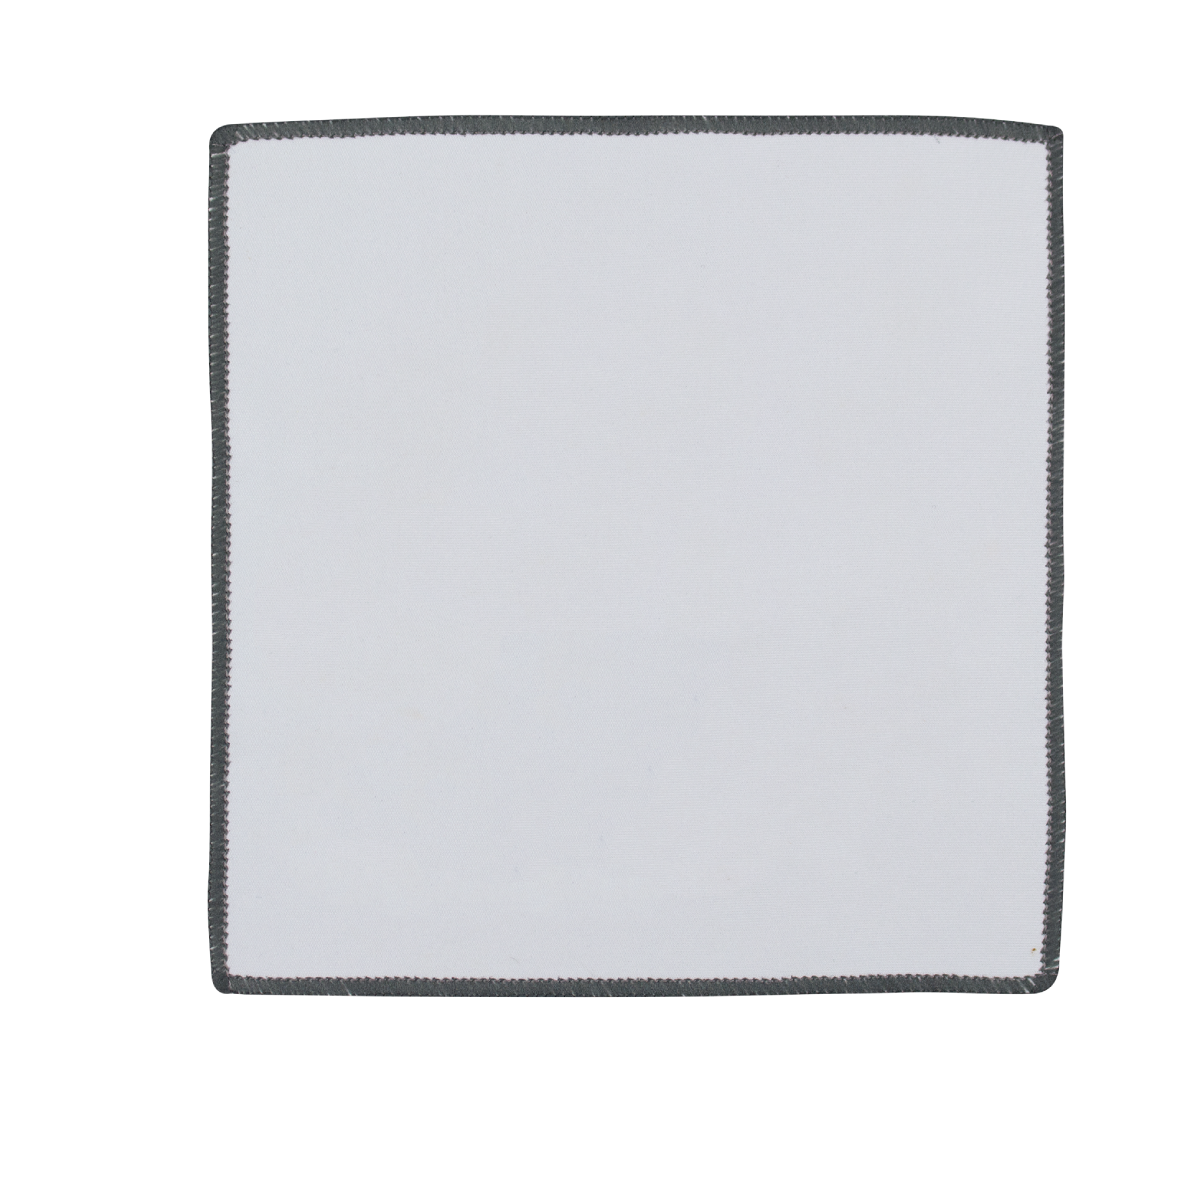 White Dye Sublimated Microfiber Cleaning Cloth